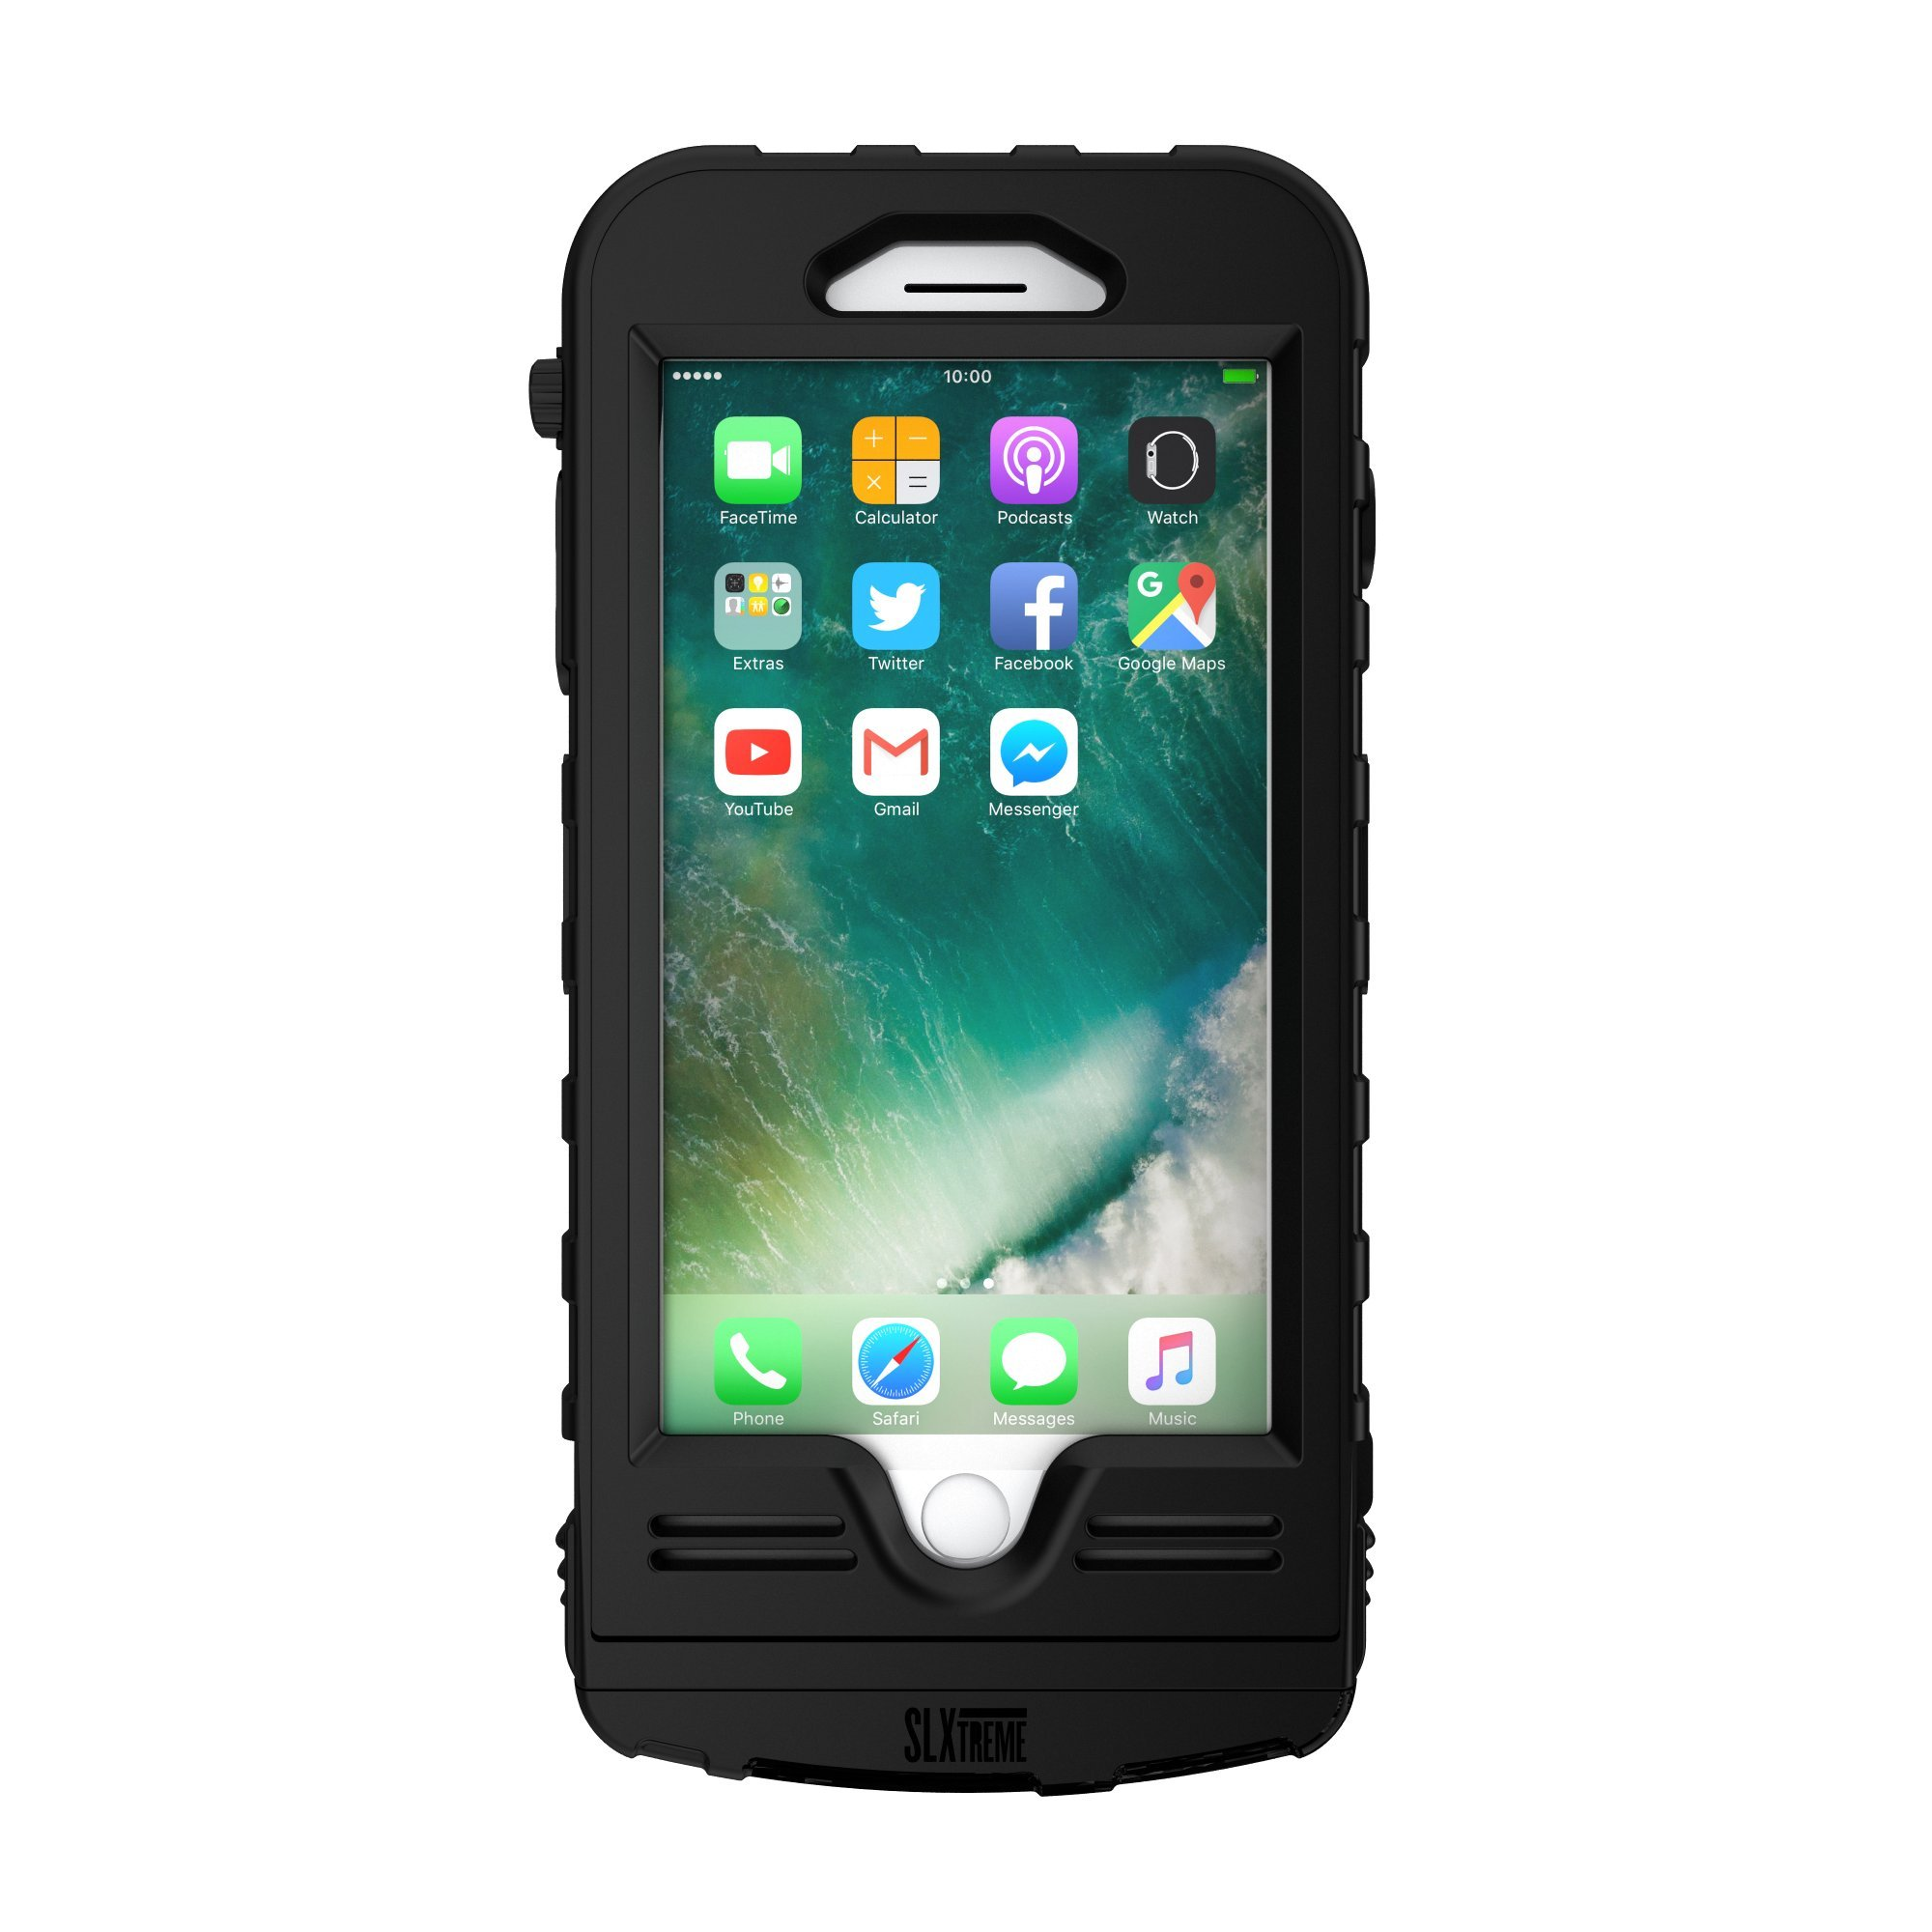 SnowLizard SLXtreme iPhone 8 Plus Case. Solar Powered, Rugged and Waterproof with a built in Battery - Night Black by Snow Lizard Products (Image #2)